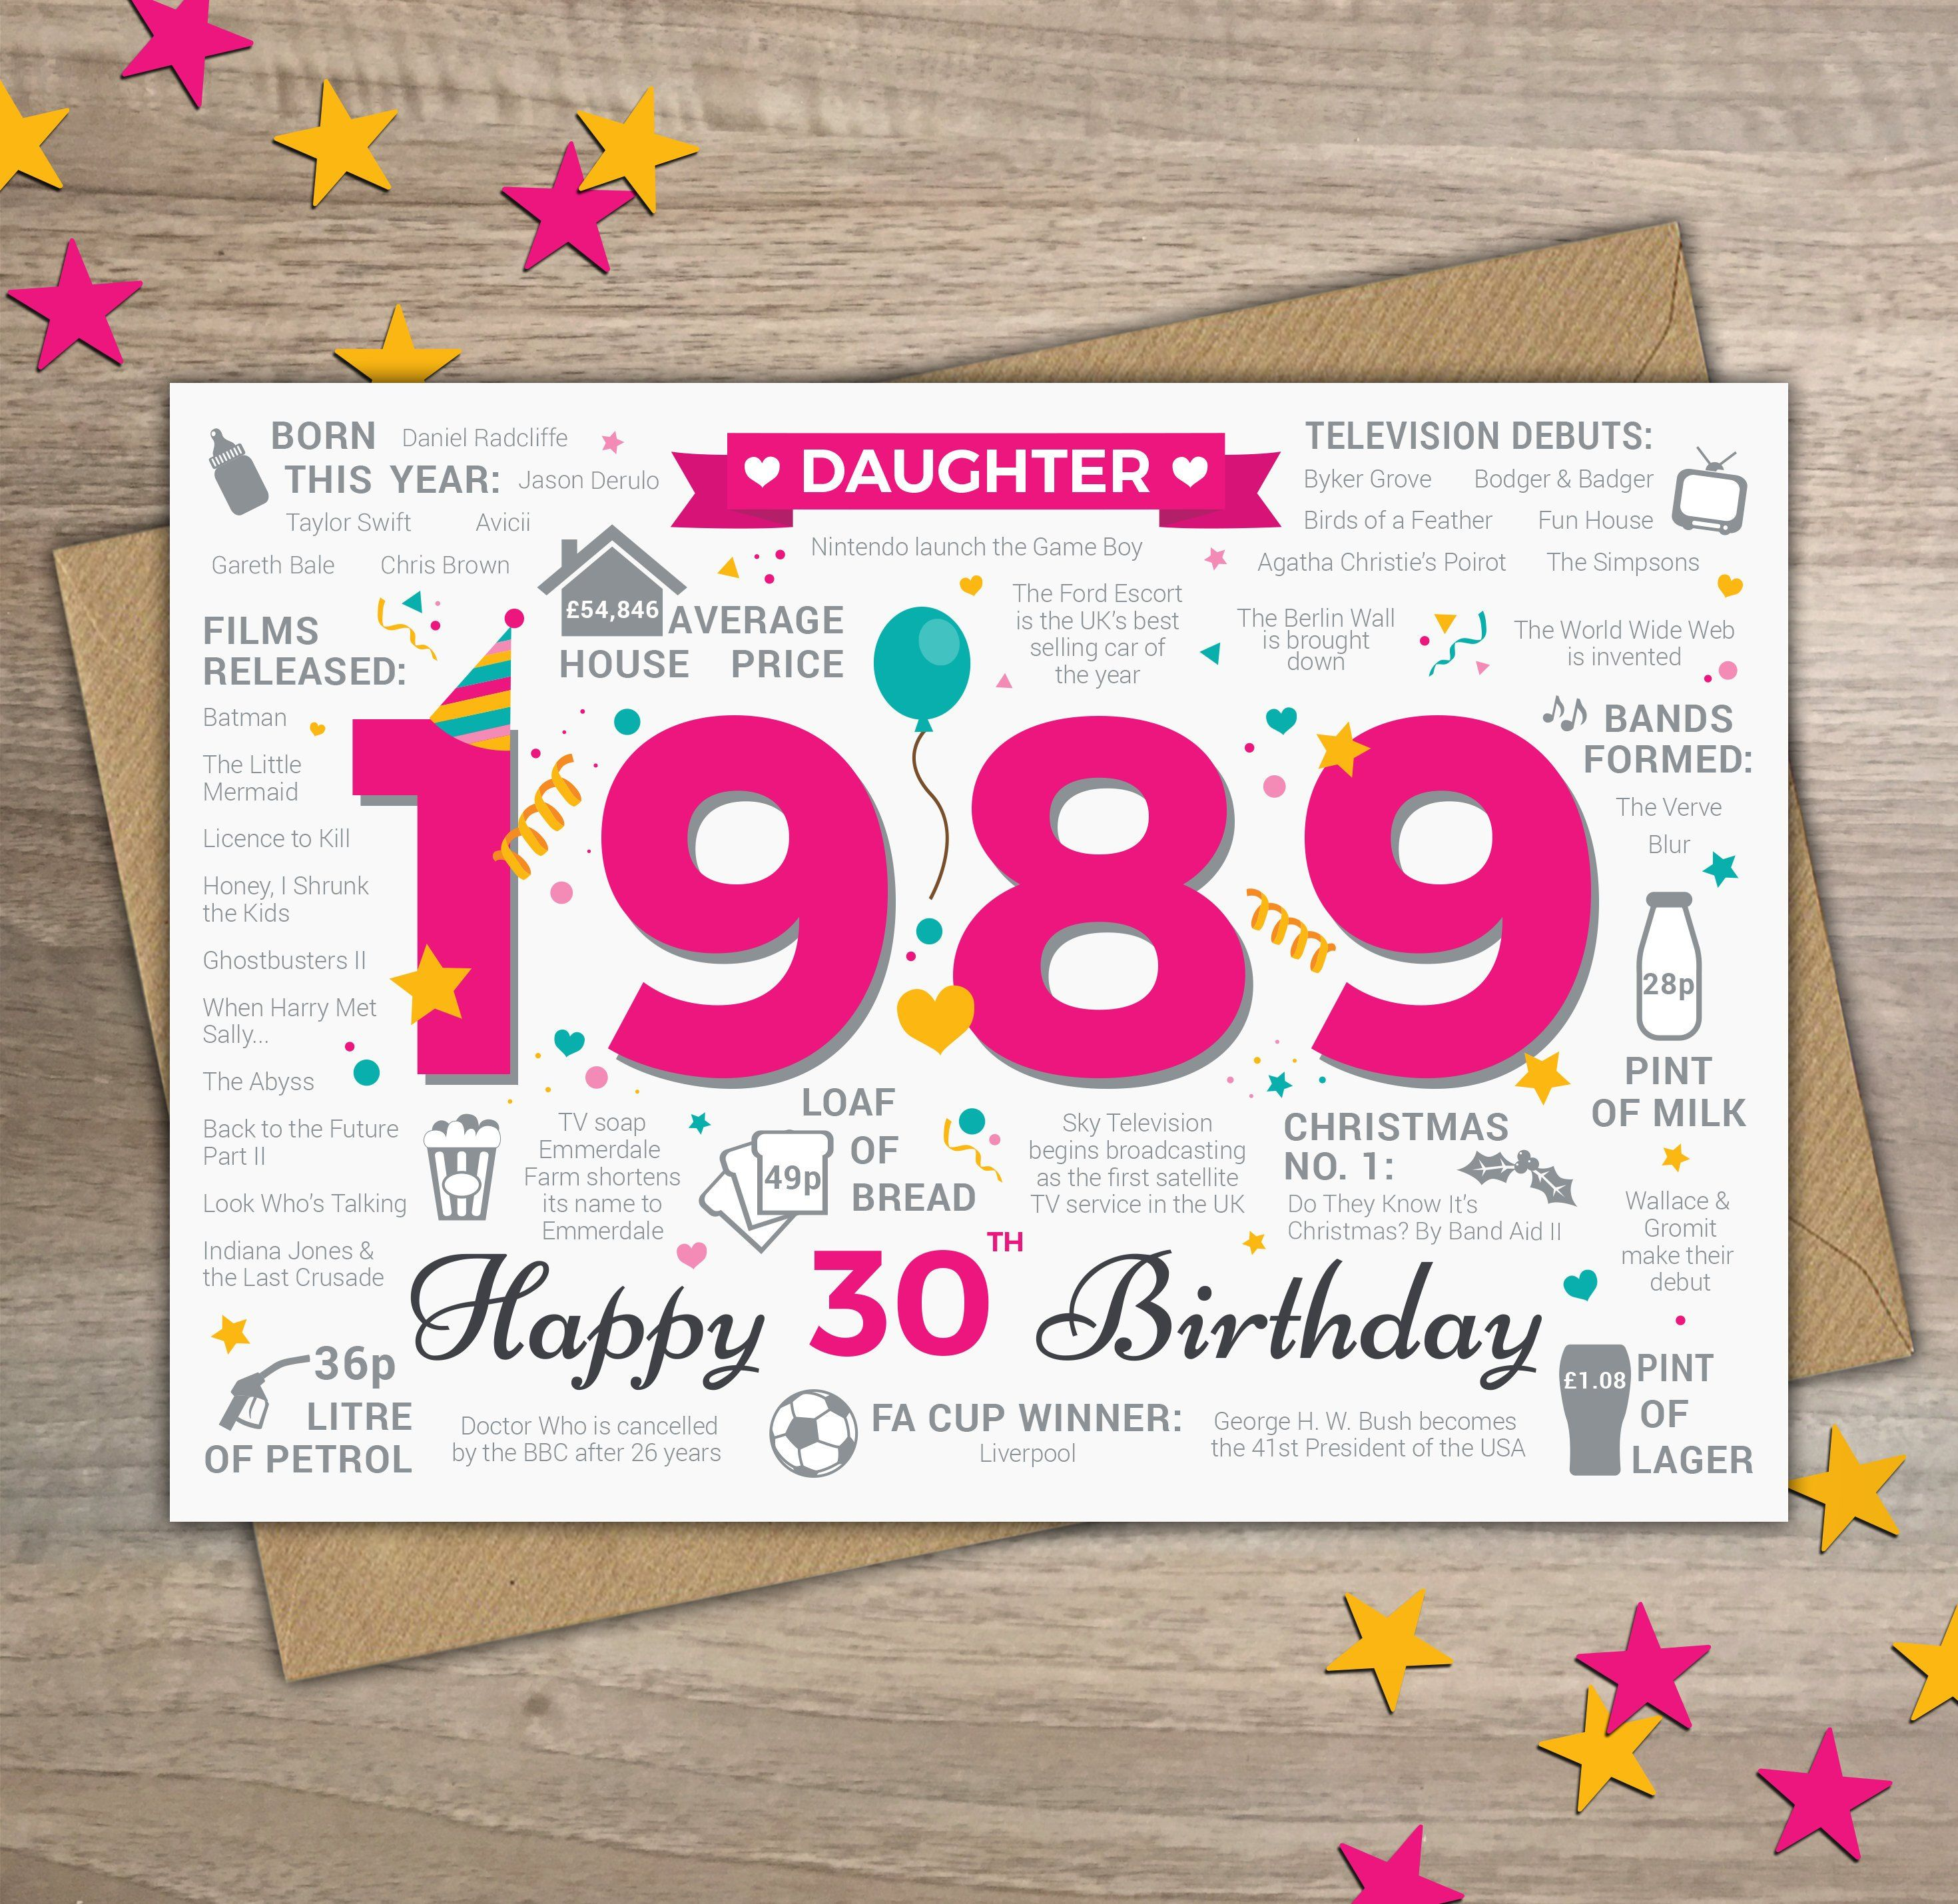 Happy 30th Birthday Daughter Google Search 40th Birthday Cards 21st Birthday Cards 50th Birthday Cards